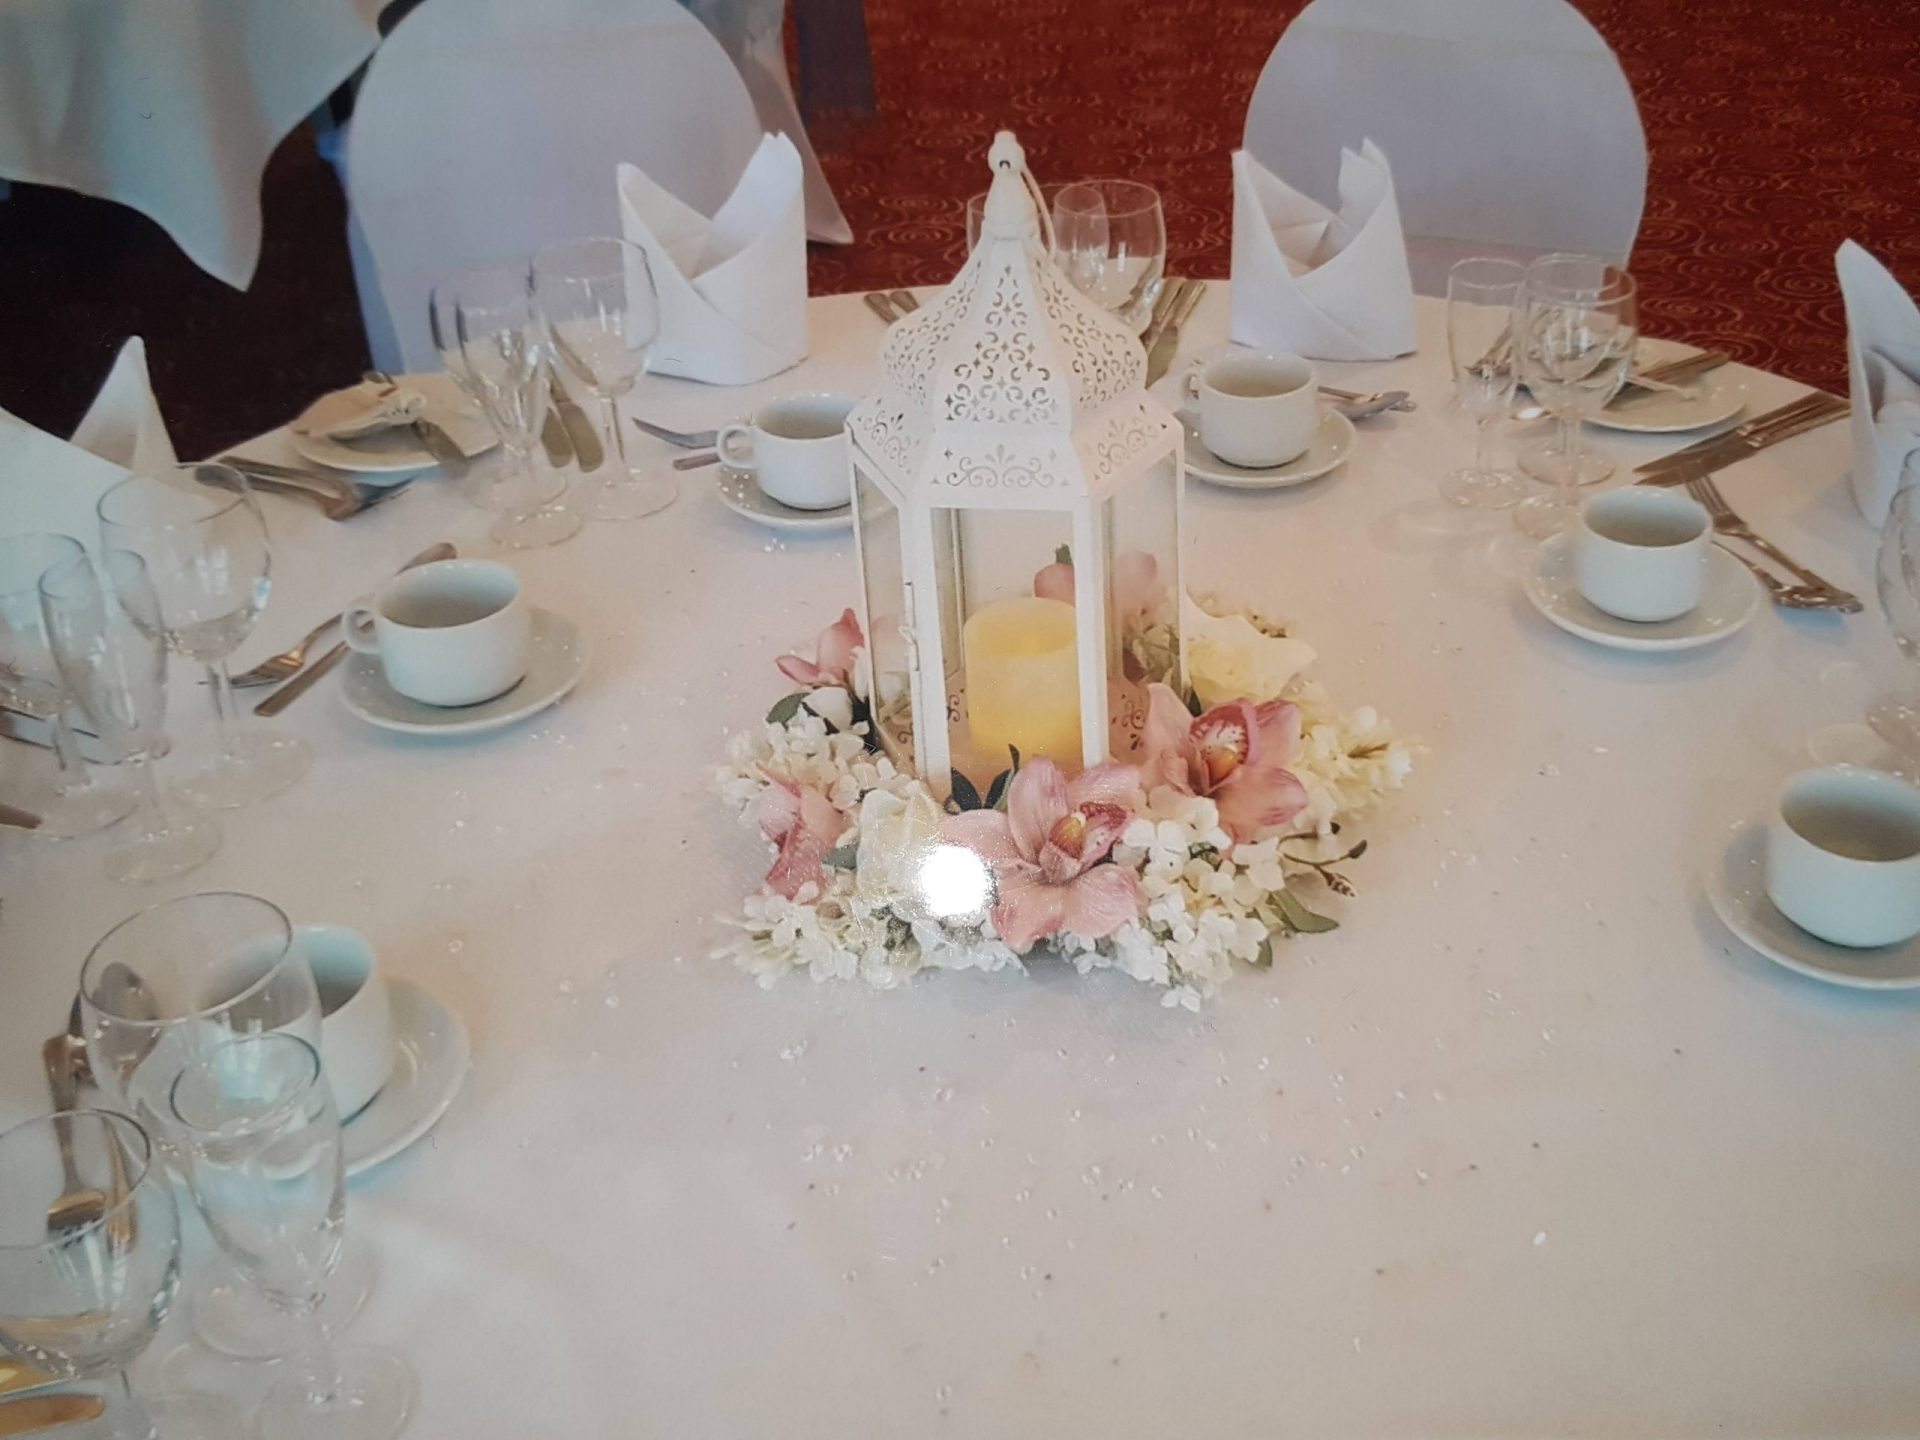 Lantern with Candles and Pink Table Centers